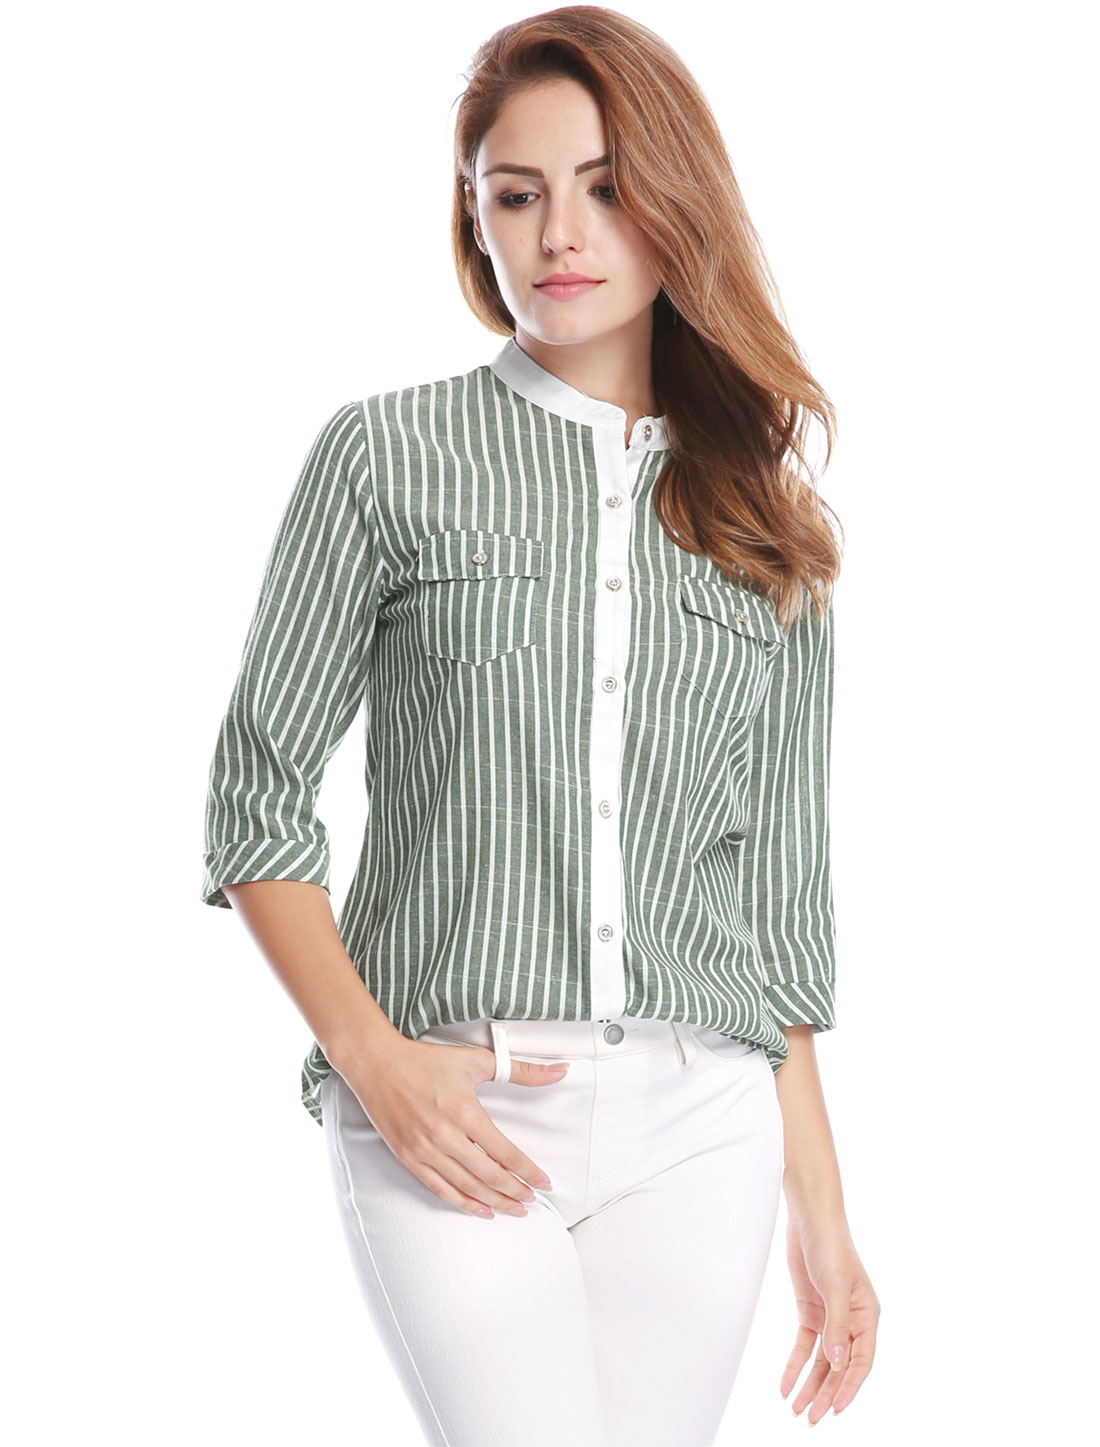 Woman Cuffed 3/4 Sleeves Stand Collar Buttoned Striped Shirt Green XS